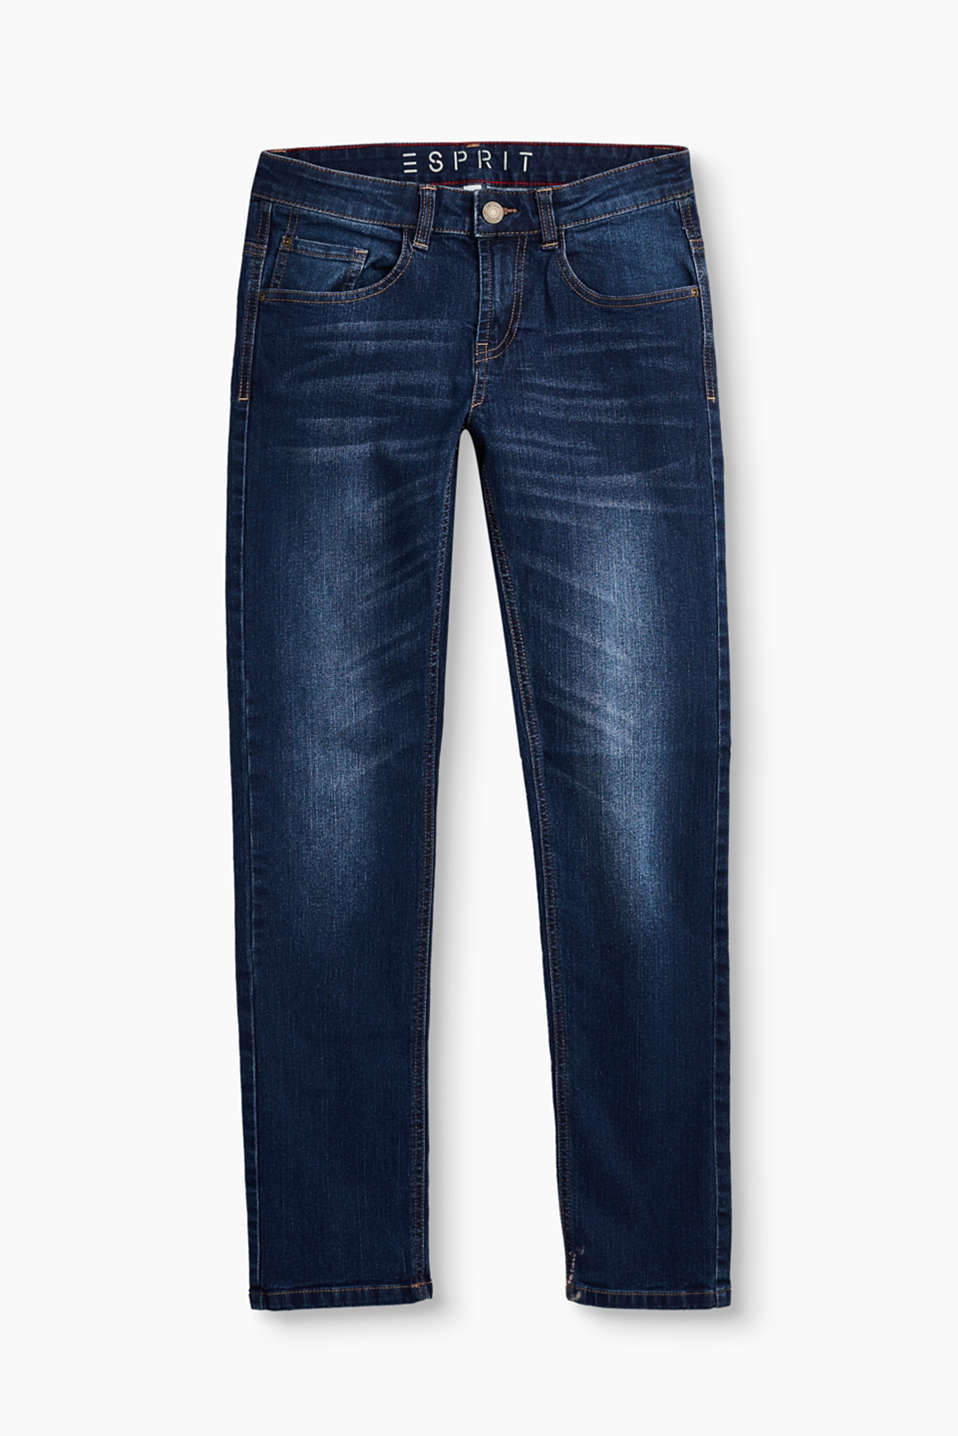 They are extremely versatile and grow apace over time: these coolly washed jeans with an adjustable waistband.